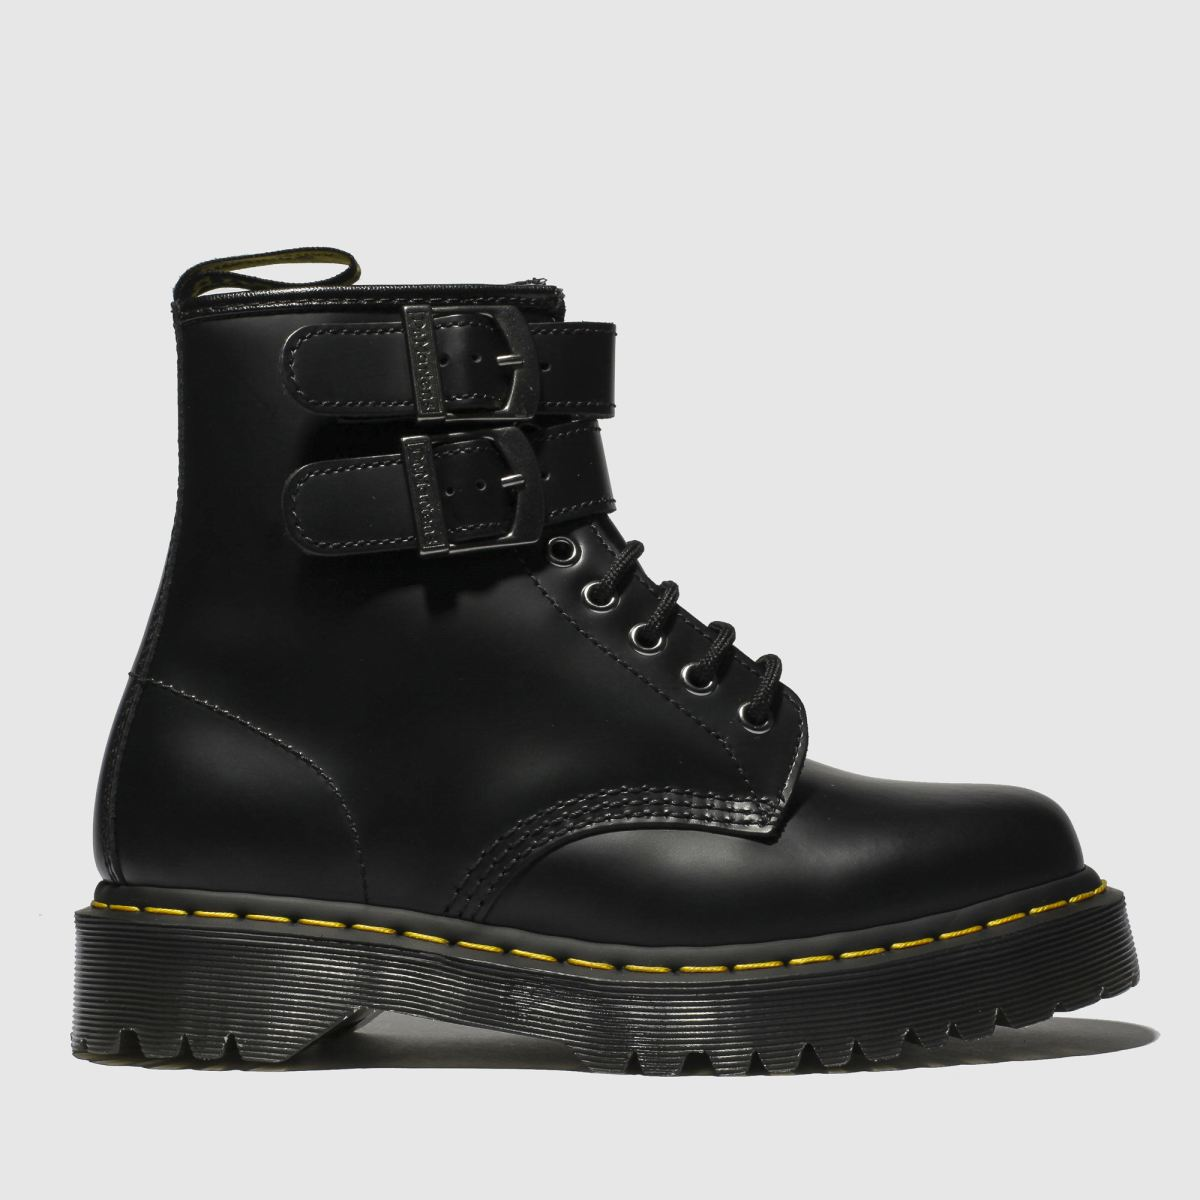 Dr Martens Black 1460 Alternative Boots